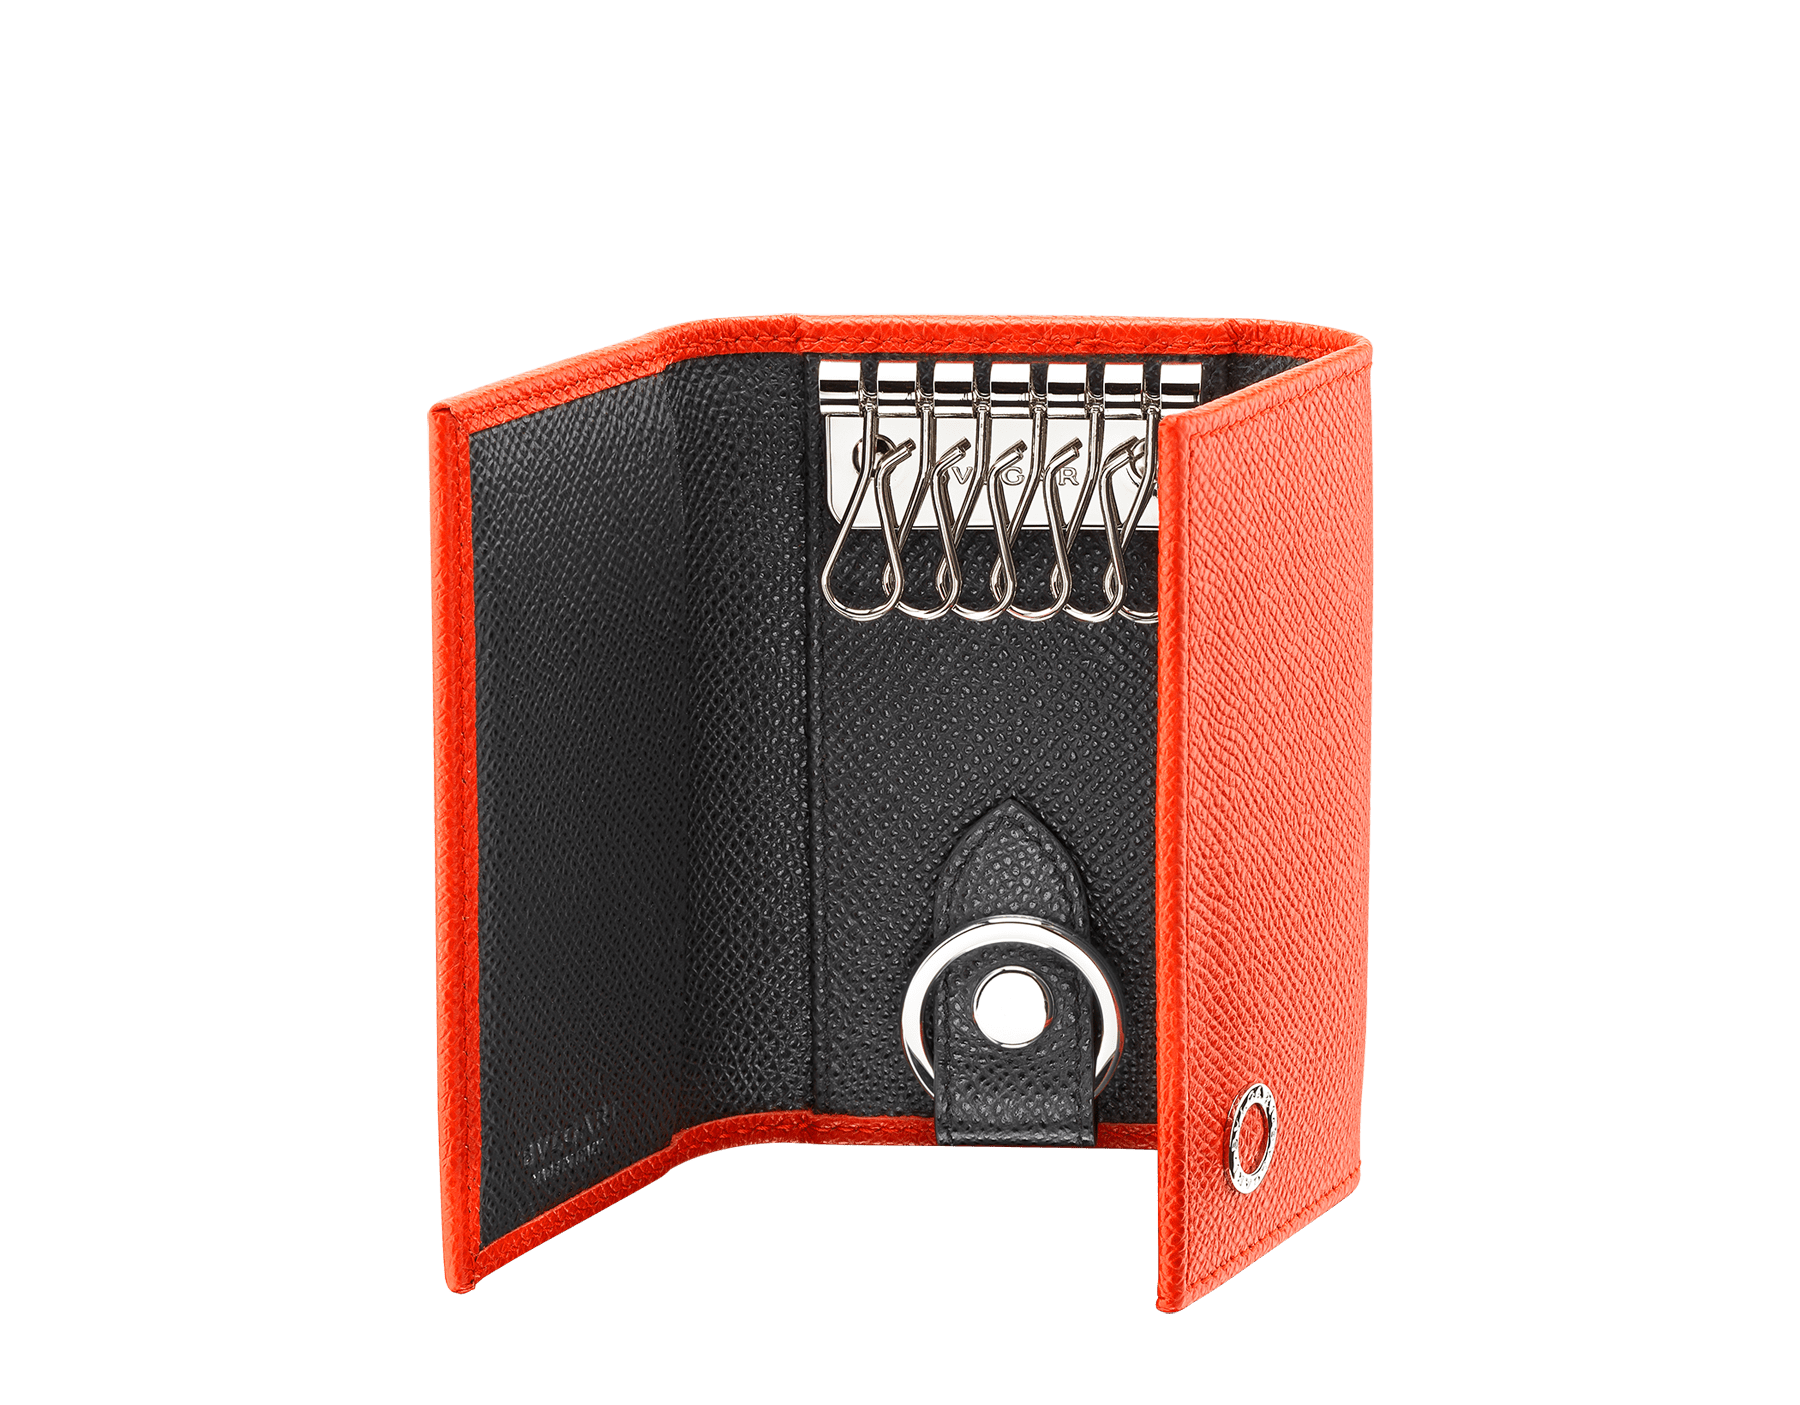 BVLGARI BVLGARI double keyholder in fire amber and charcoal diamond grain calf leather. Detachable car keyholder in palladium plated brass. 289134 image 2